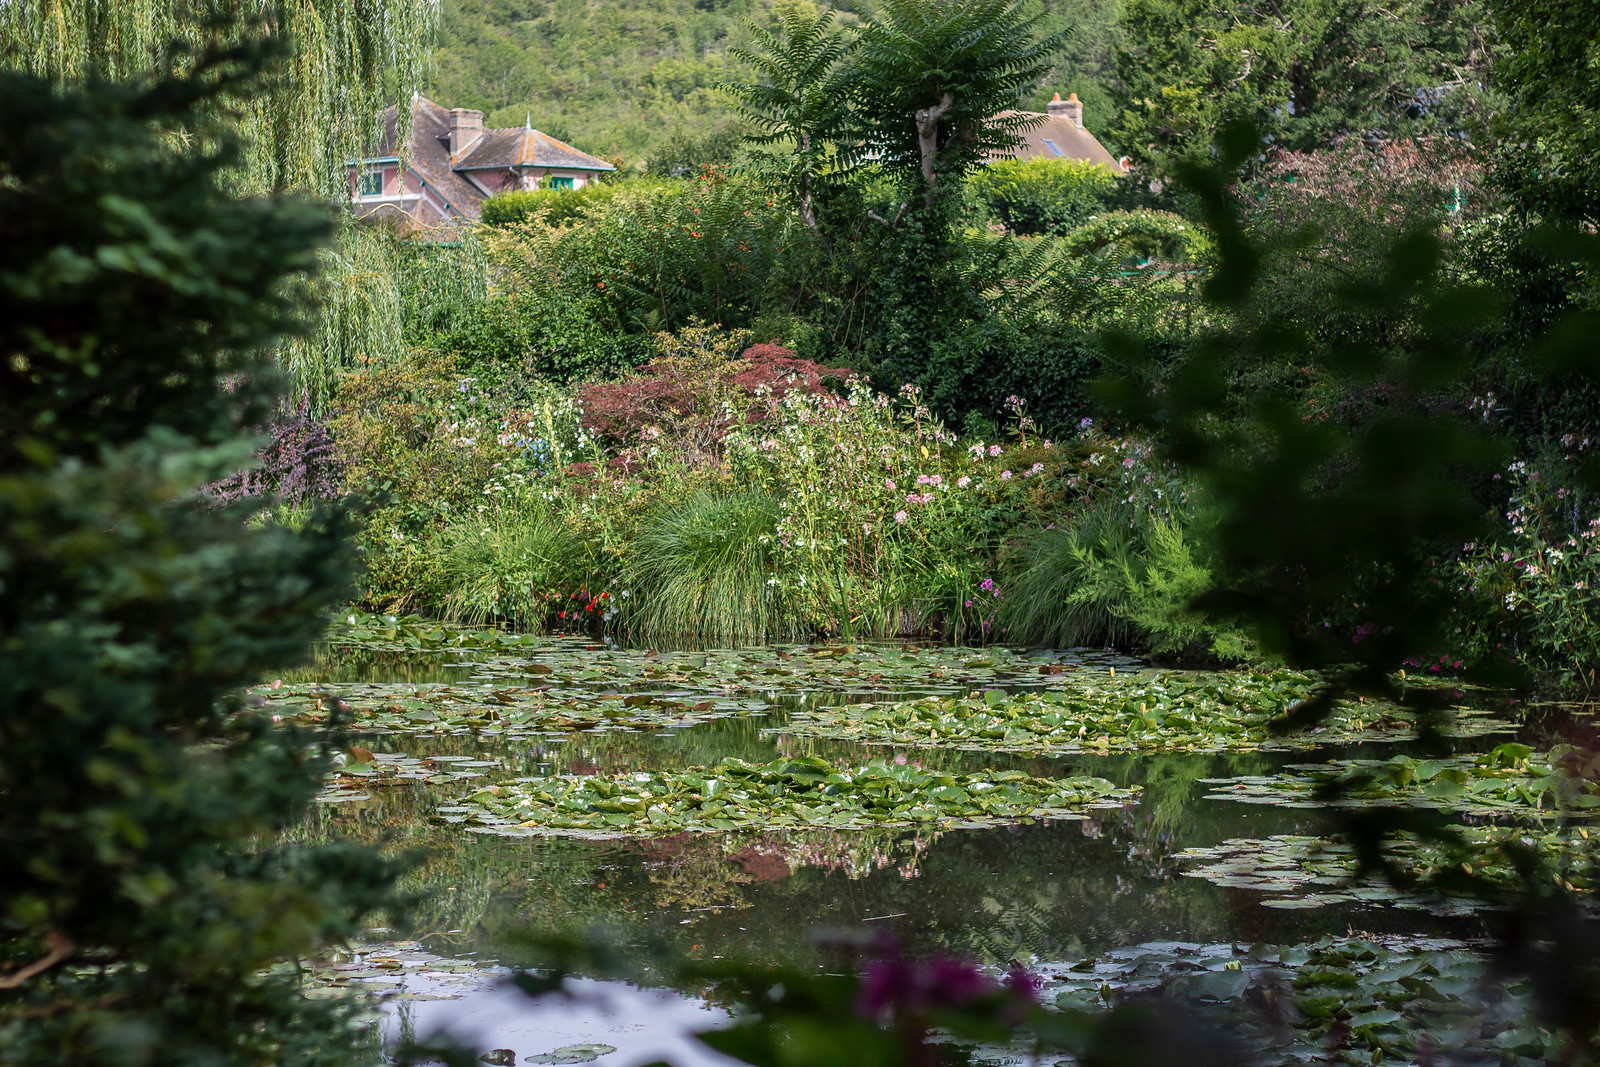 The famous Monet Garden - the pond and water lilies